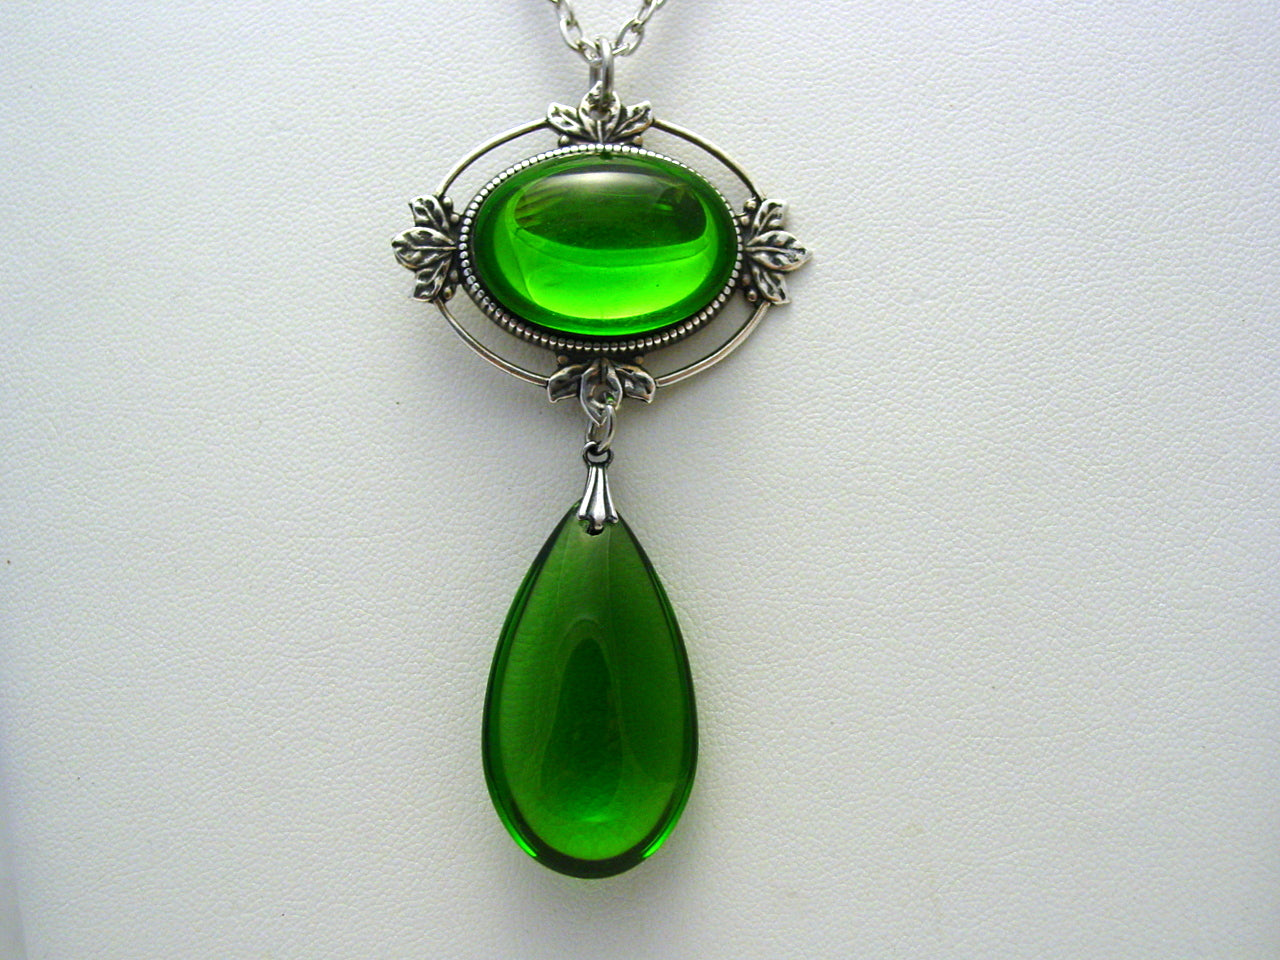 Witches Of East End Green Silver Oxidized Finish Necklace Wendy's Witches of East End